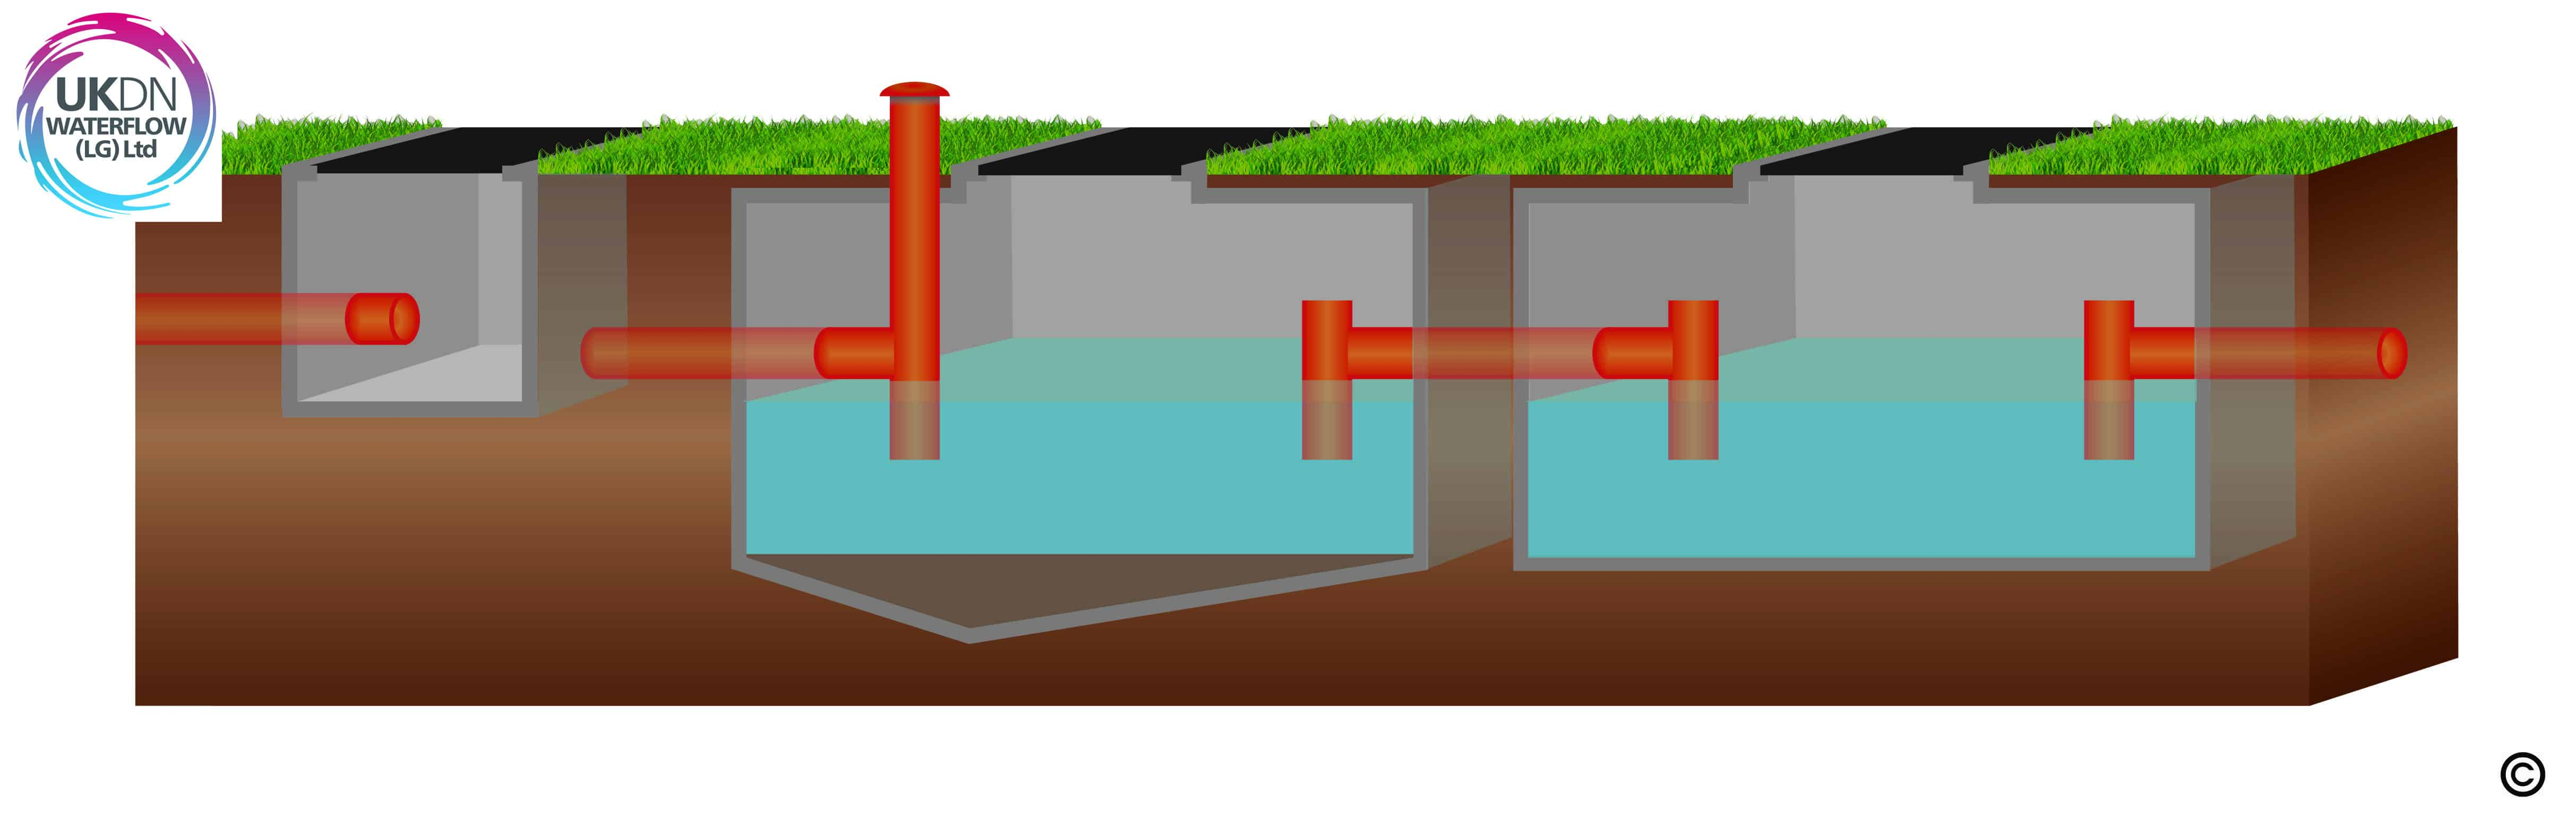 What Is An Interceptor Ukdn Waterflow